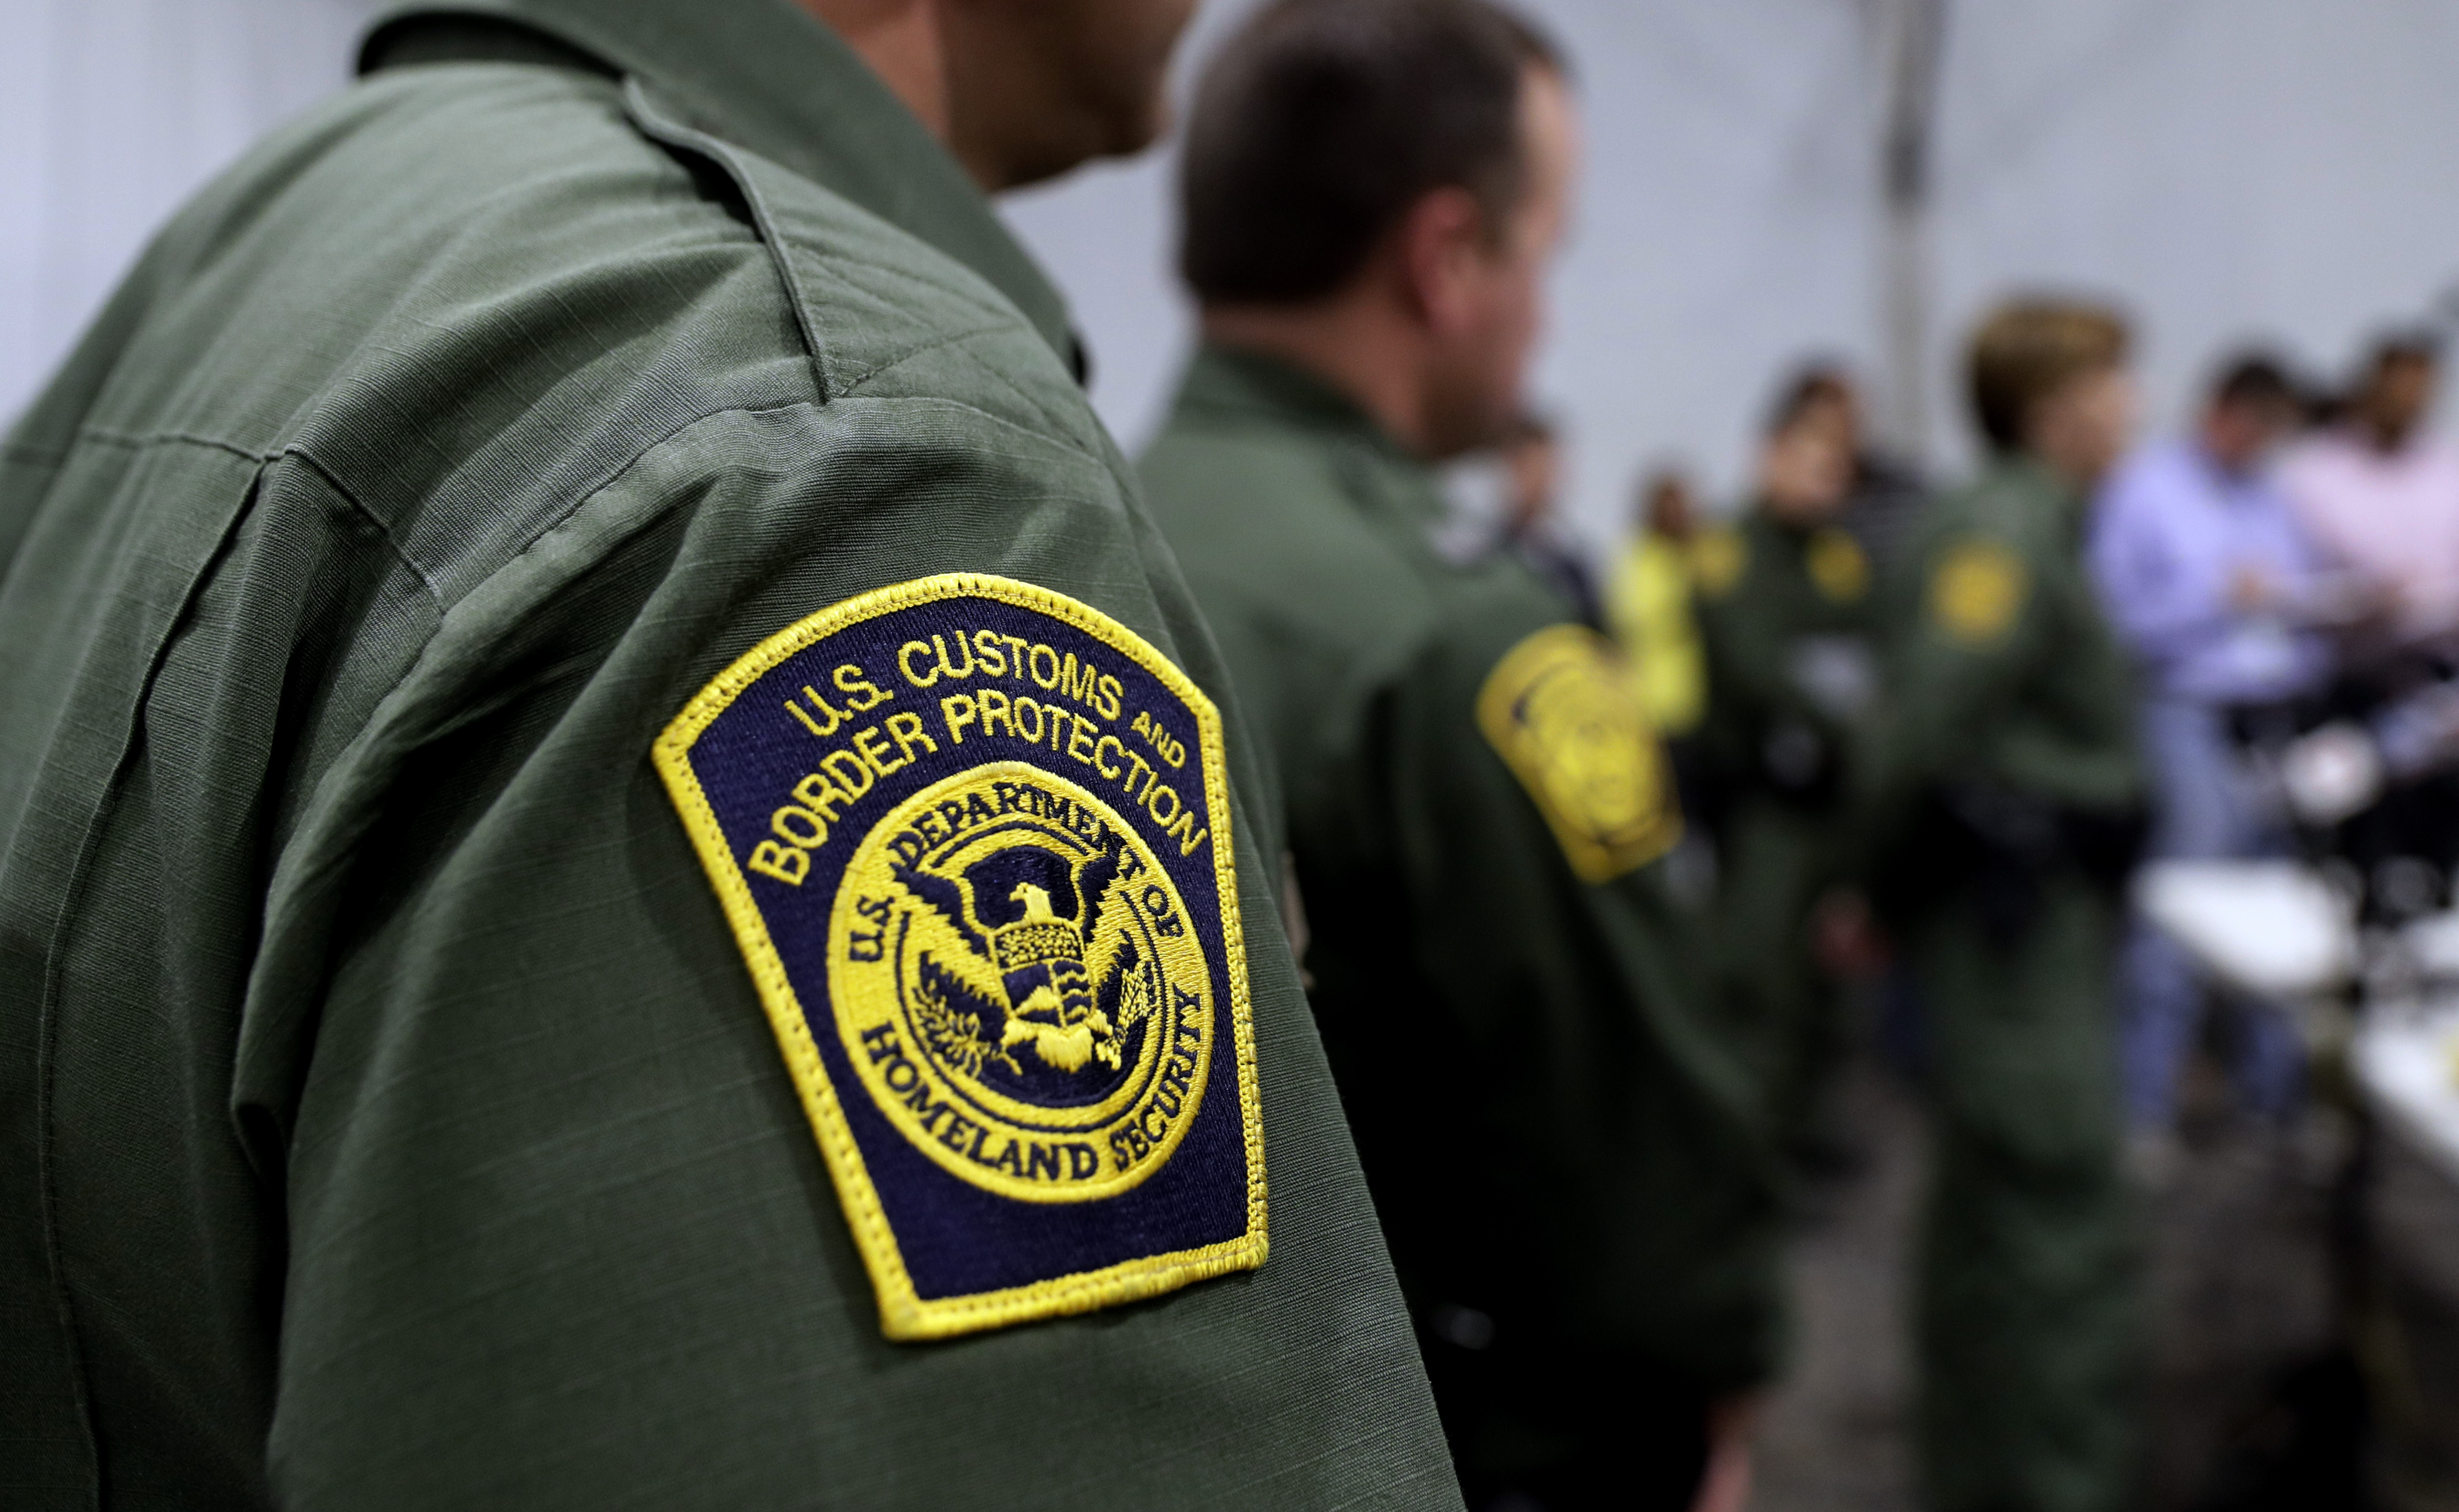 Congolese woman, 41, dies after entering US border custody